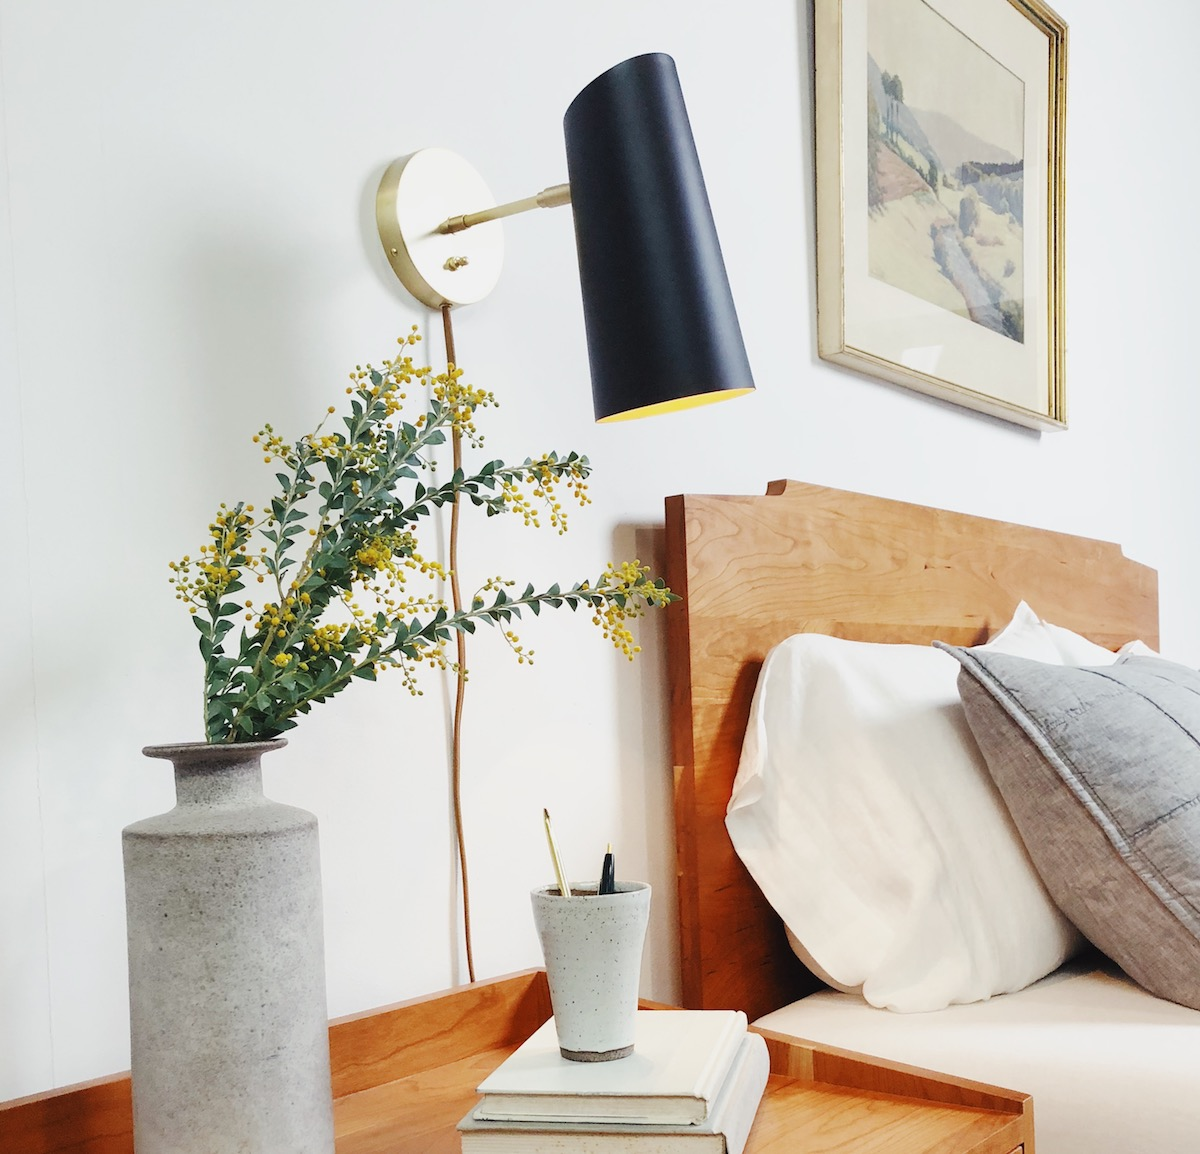 How To Install A Plug In Wall Sconce